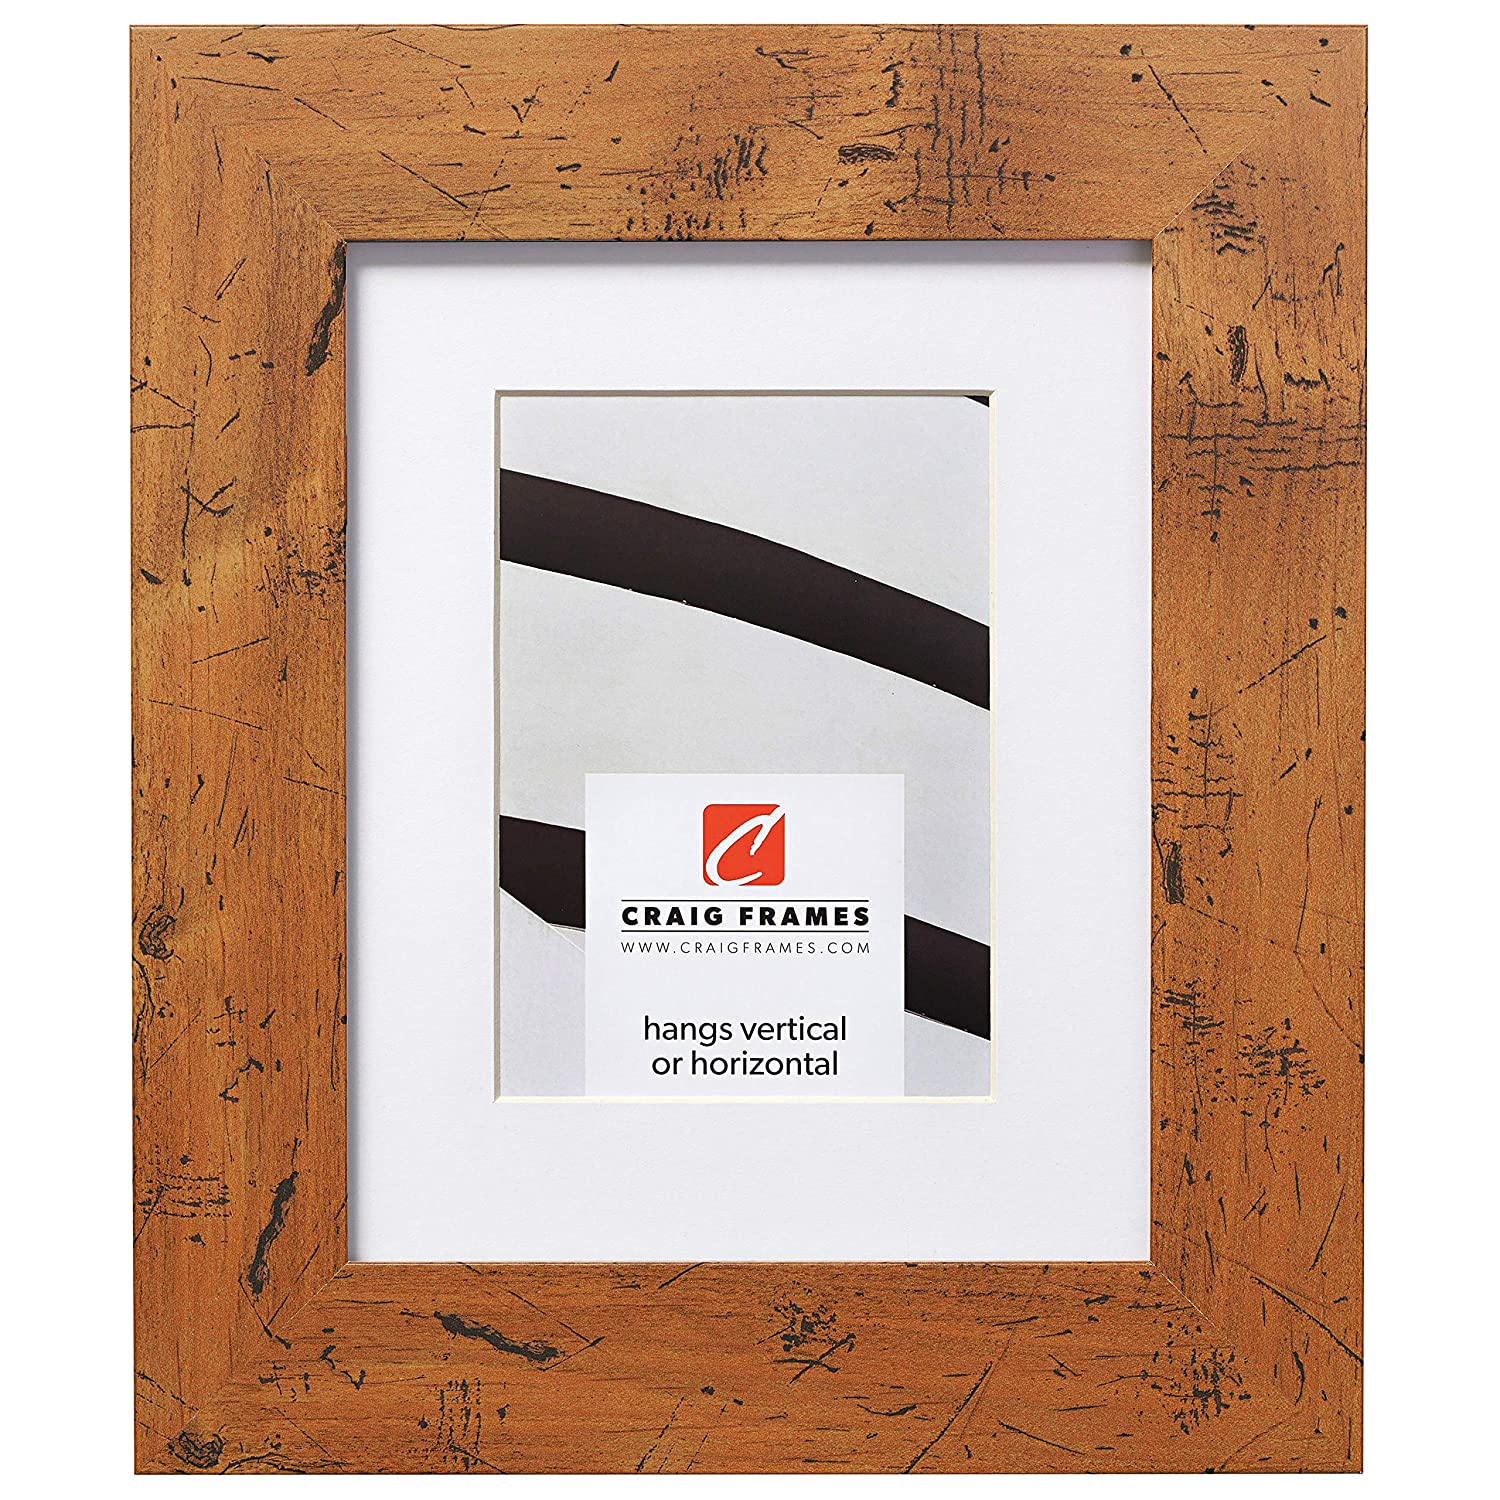 Craig Frames Bauhaus 200, 20 x 24 Inch Light Walnut Brown Picture Frame Matted to Display a 16 x 20 Inch Photo